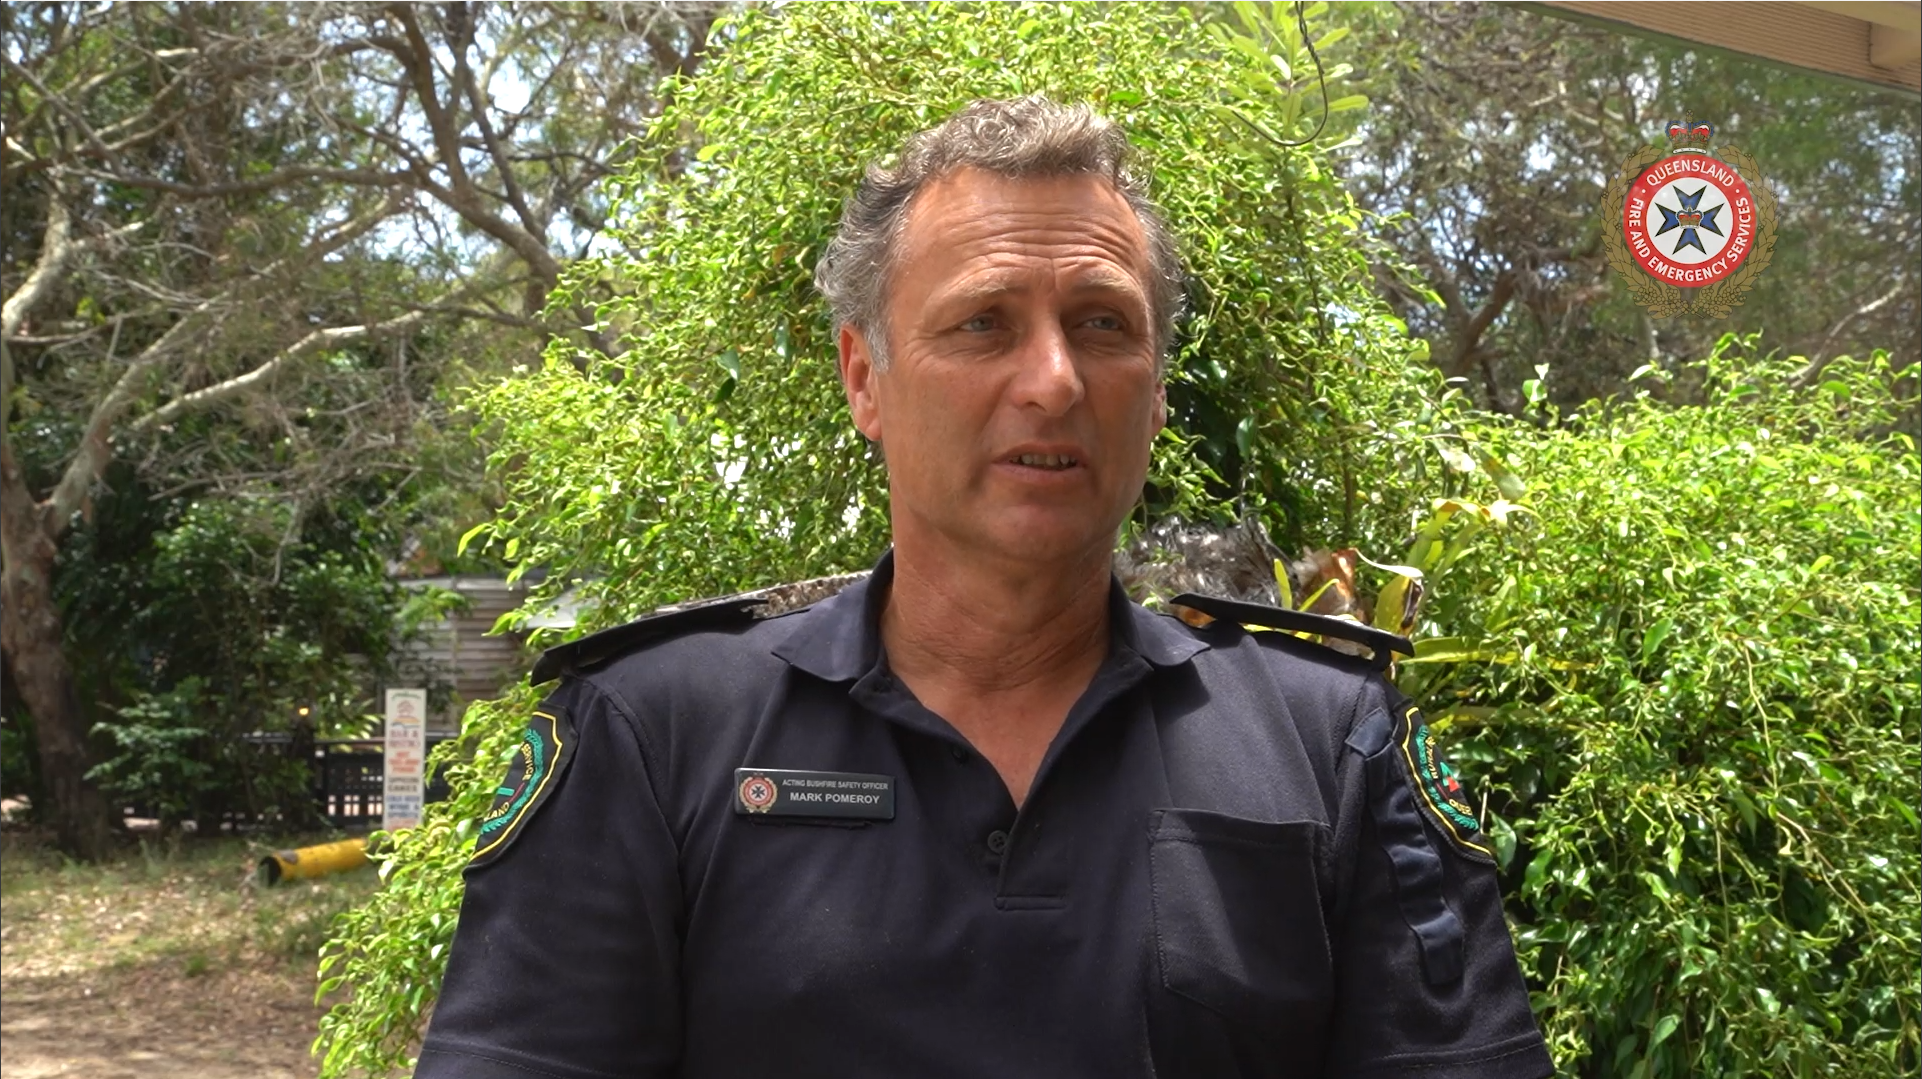 Interview with Acting Bushfire Safety Officer Mark Pomeroy on challenges with fighting bushfires on K'Gari and the current conditions on the island.